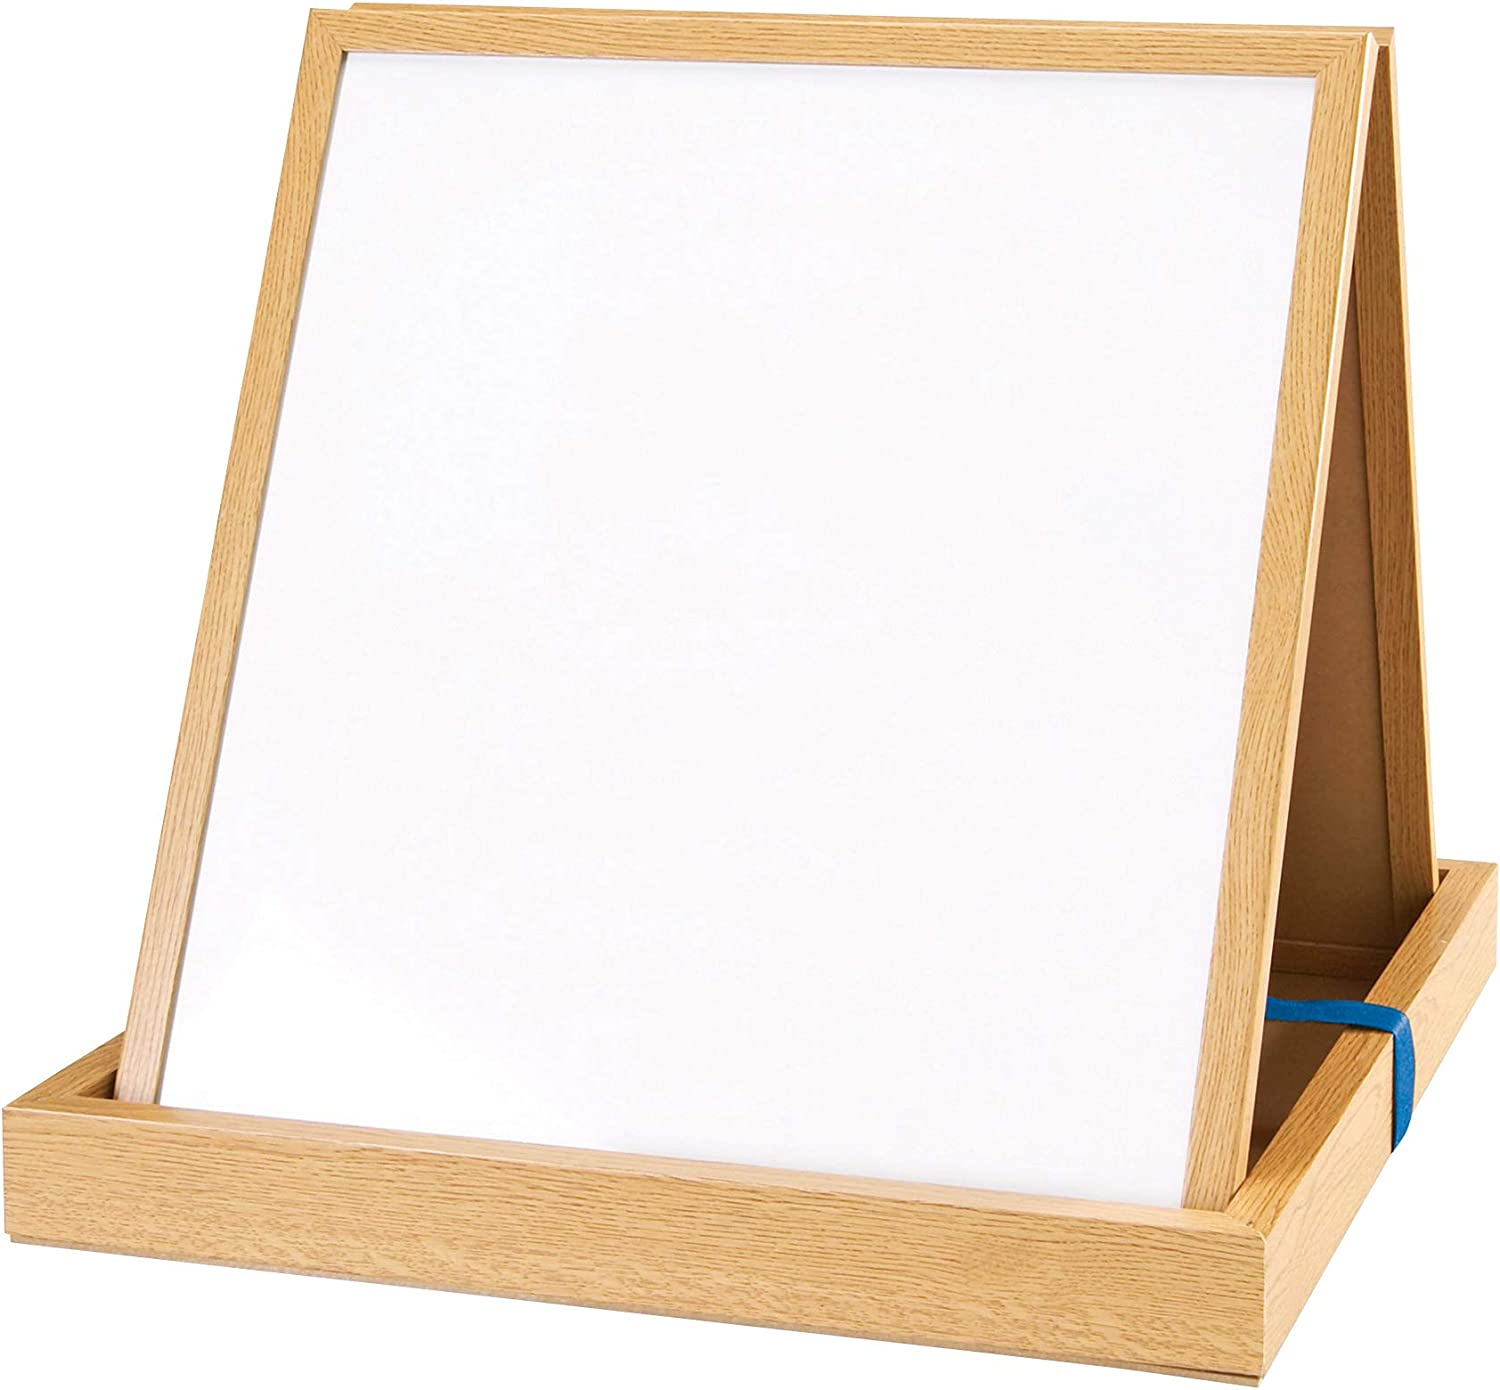 New mail order Learning Resources Double-sided Easel Max 79% OFF Tabletop